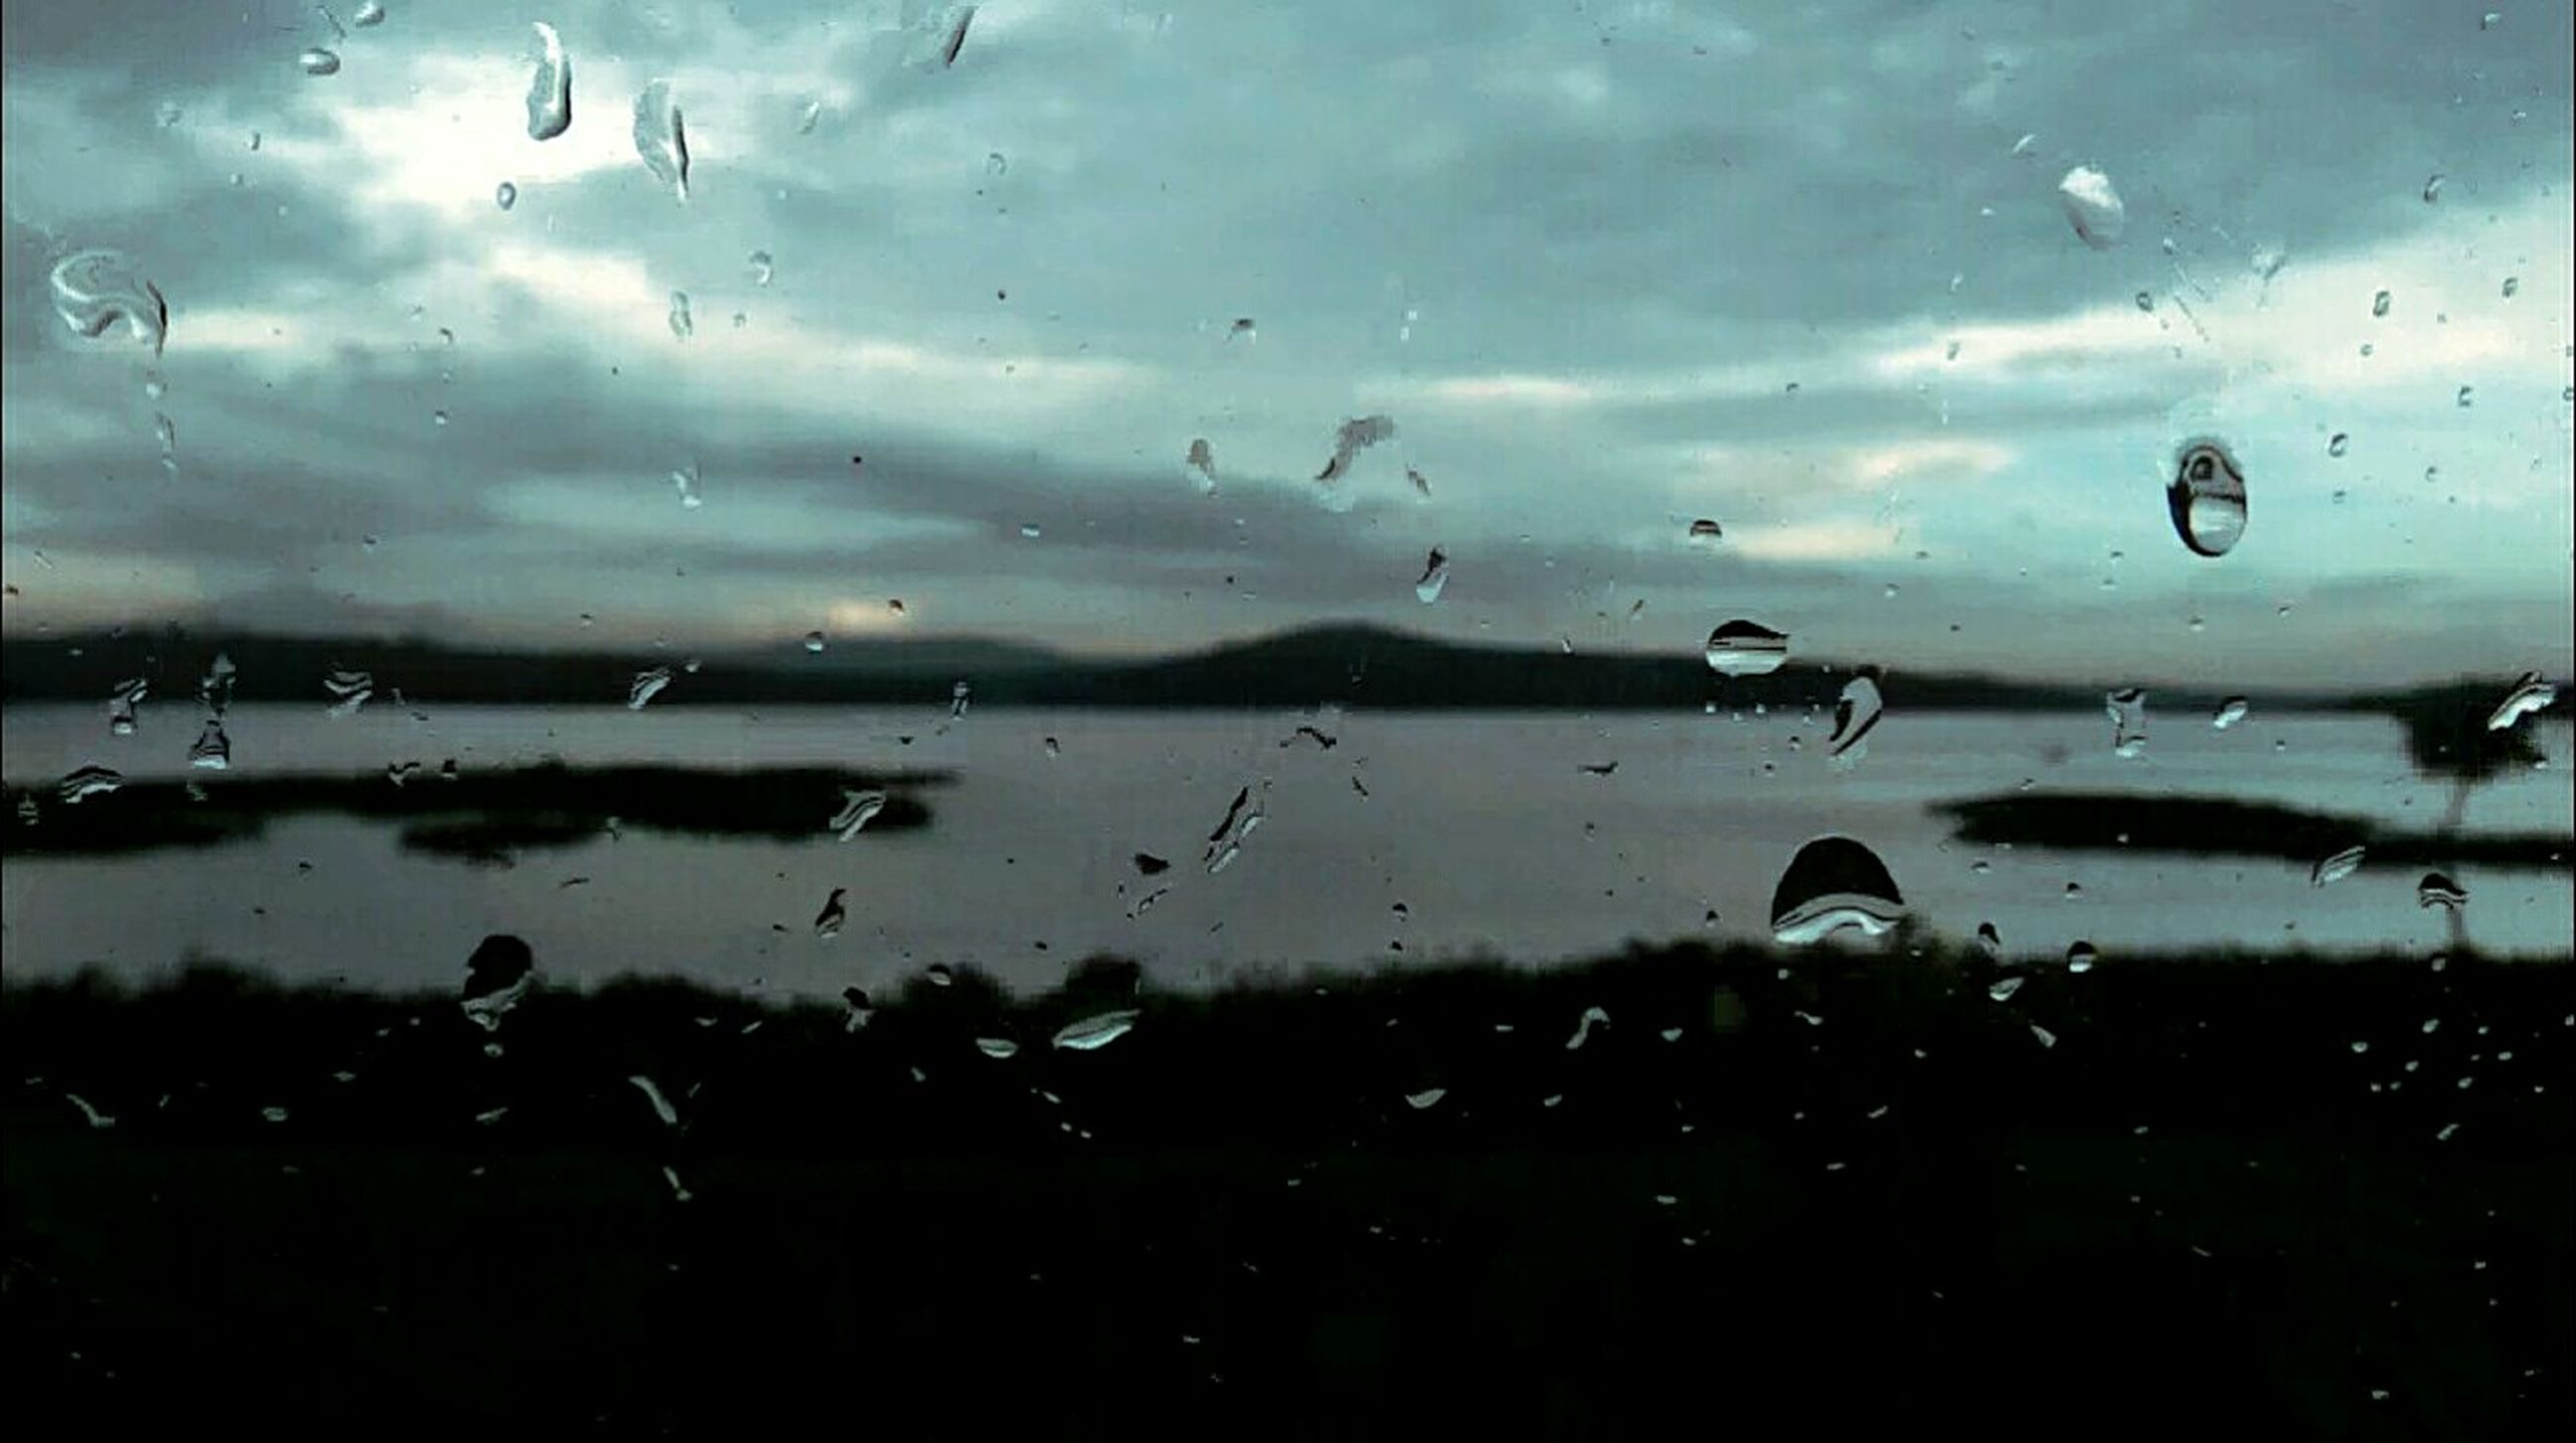 water, sky, drop, transparent, cloud - sky, wet, rain, window, weather, glass - material, cloud, indoors, flying, nature, cloudy, dusk, raindrop, silhouette, glass, focus on foreground